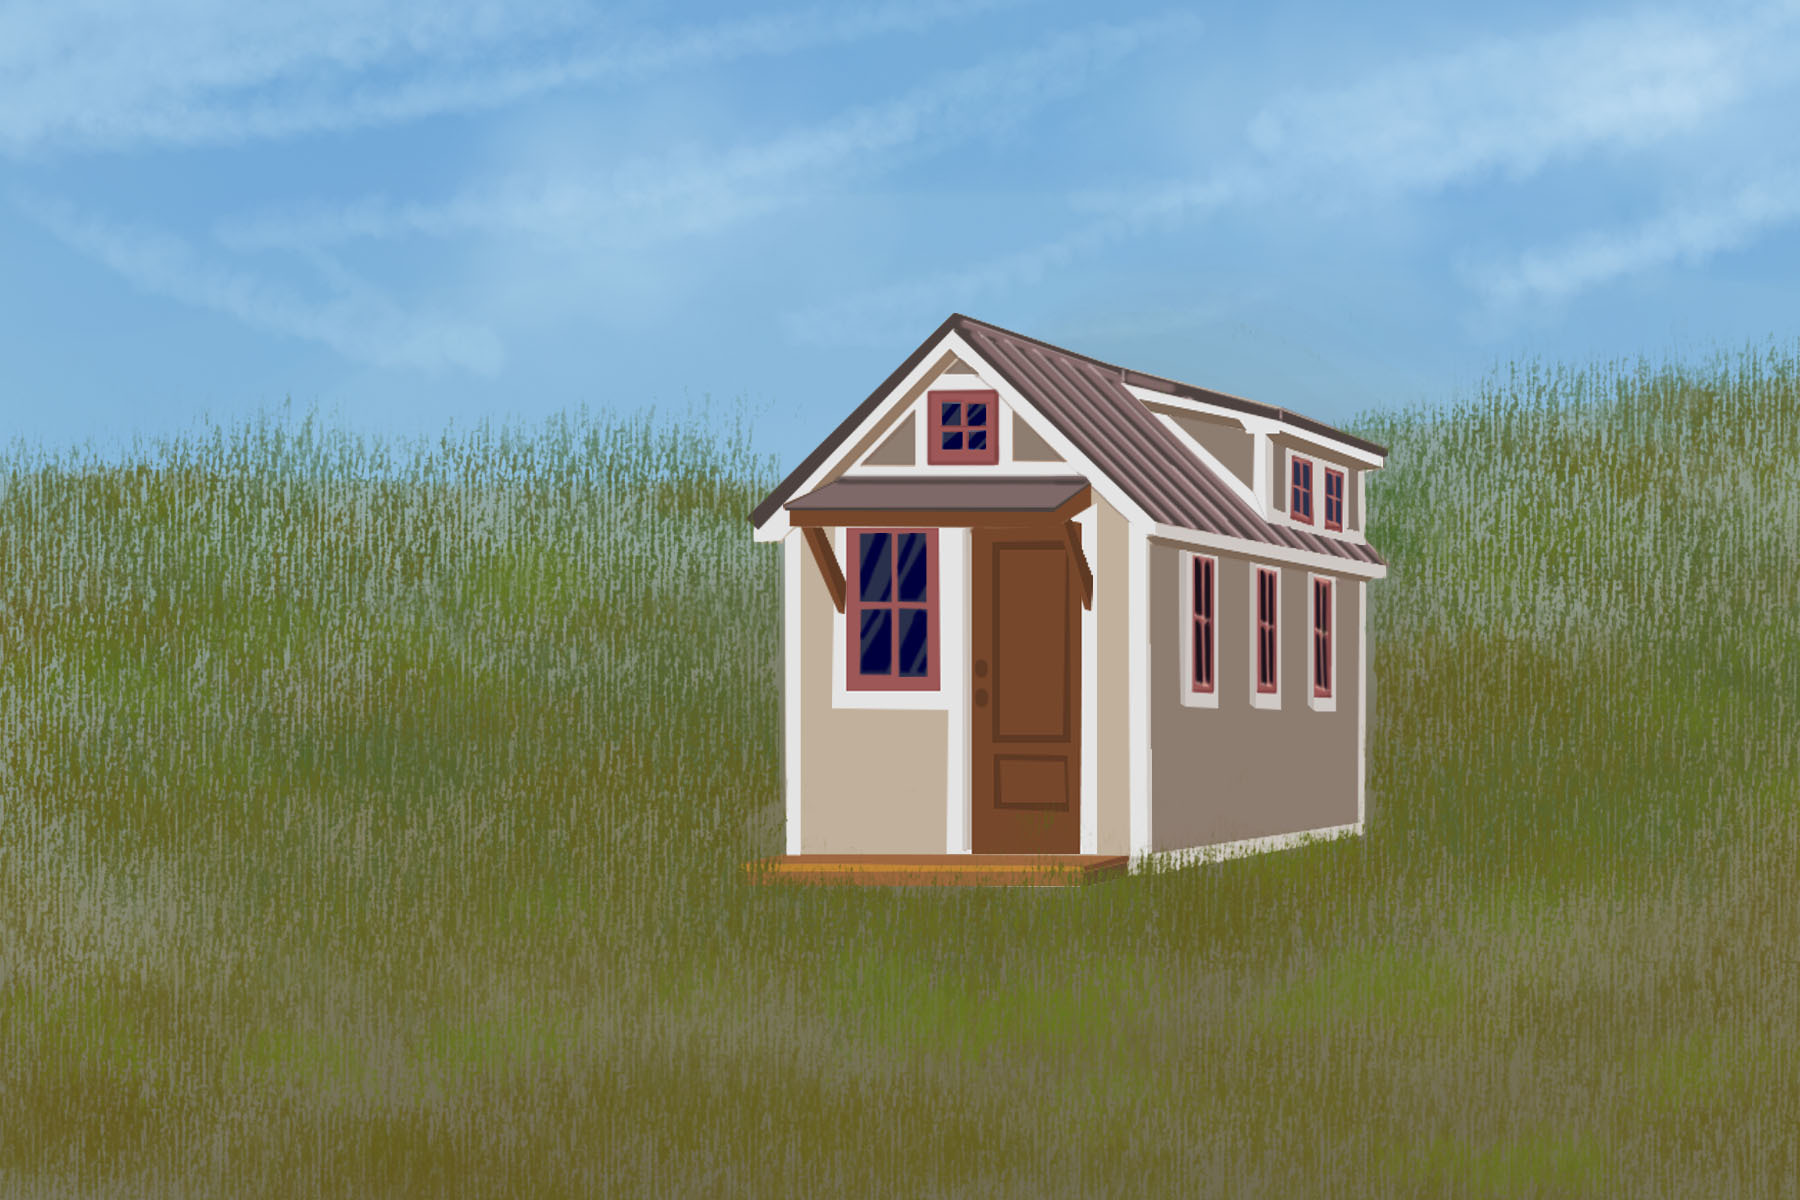 Illustration by Diana Egan, University of Kentucky of a tiny home in a field, reflecting the tiny lifestyle